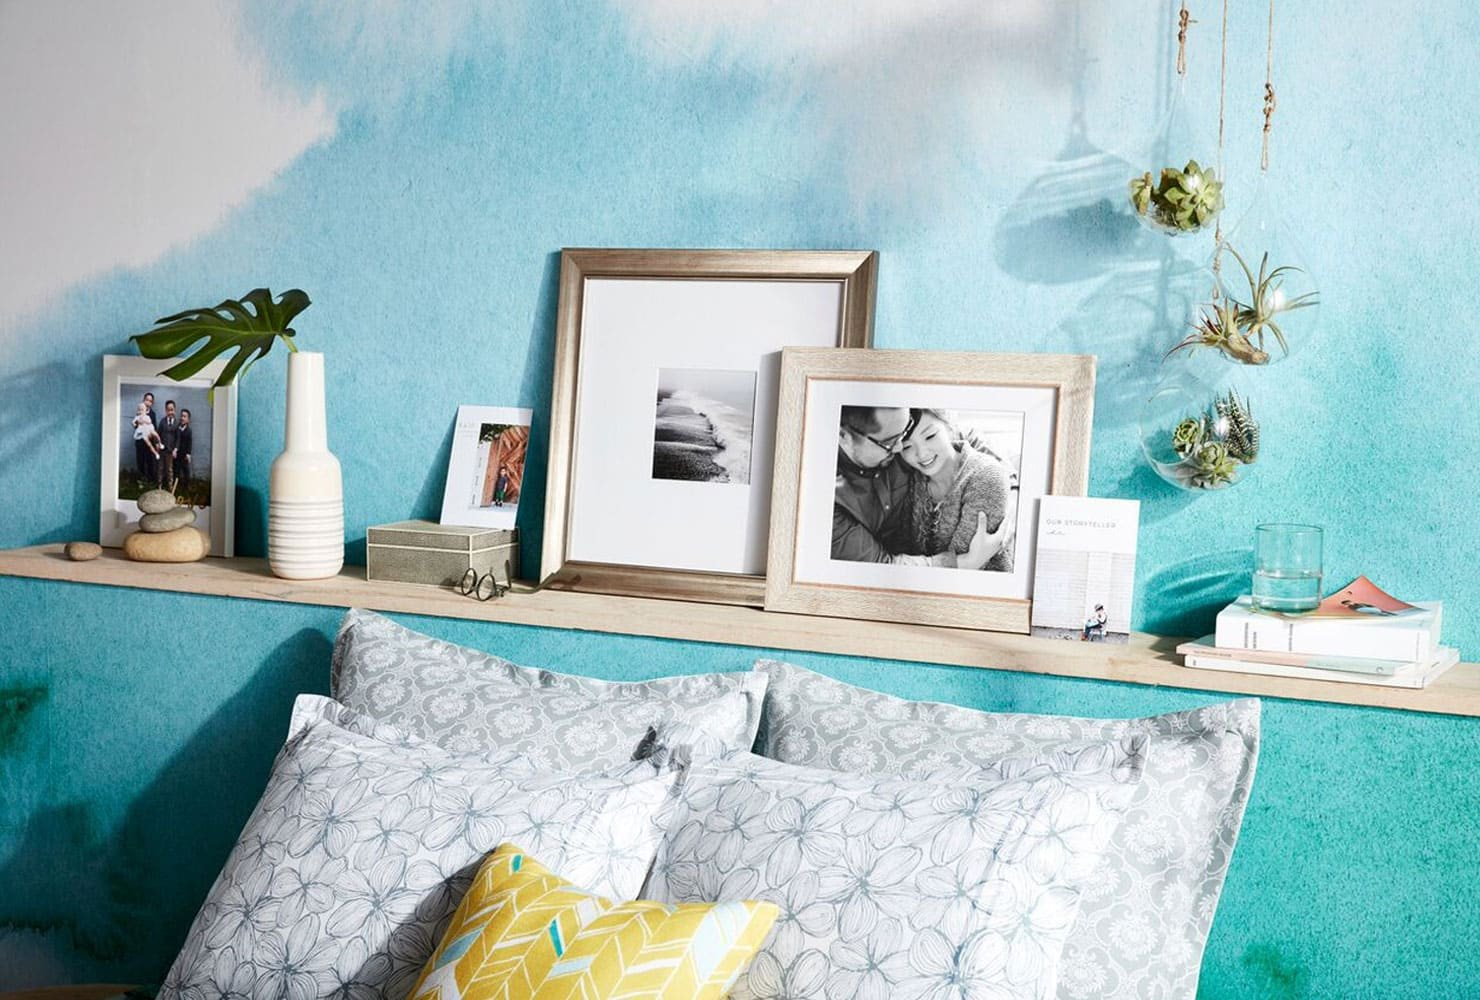 Diy Wall Decor for Bedroom Luxury 24 Diy Bedroom Decor Ideas to Inspire You with Printables